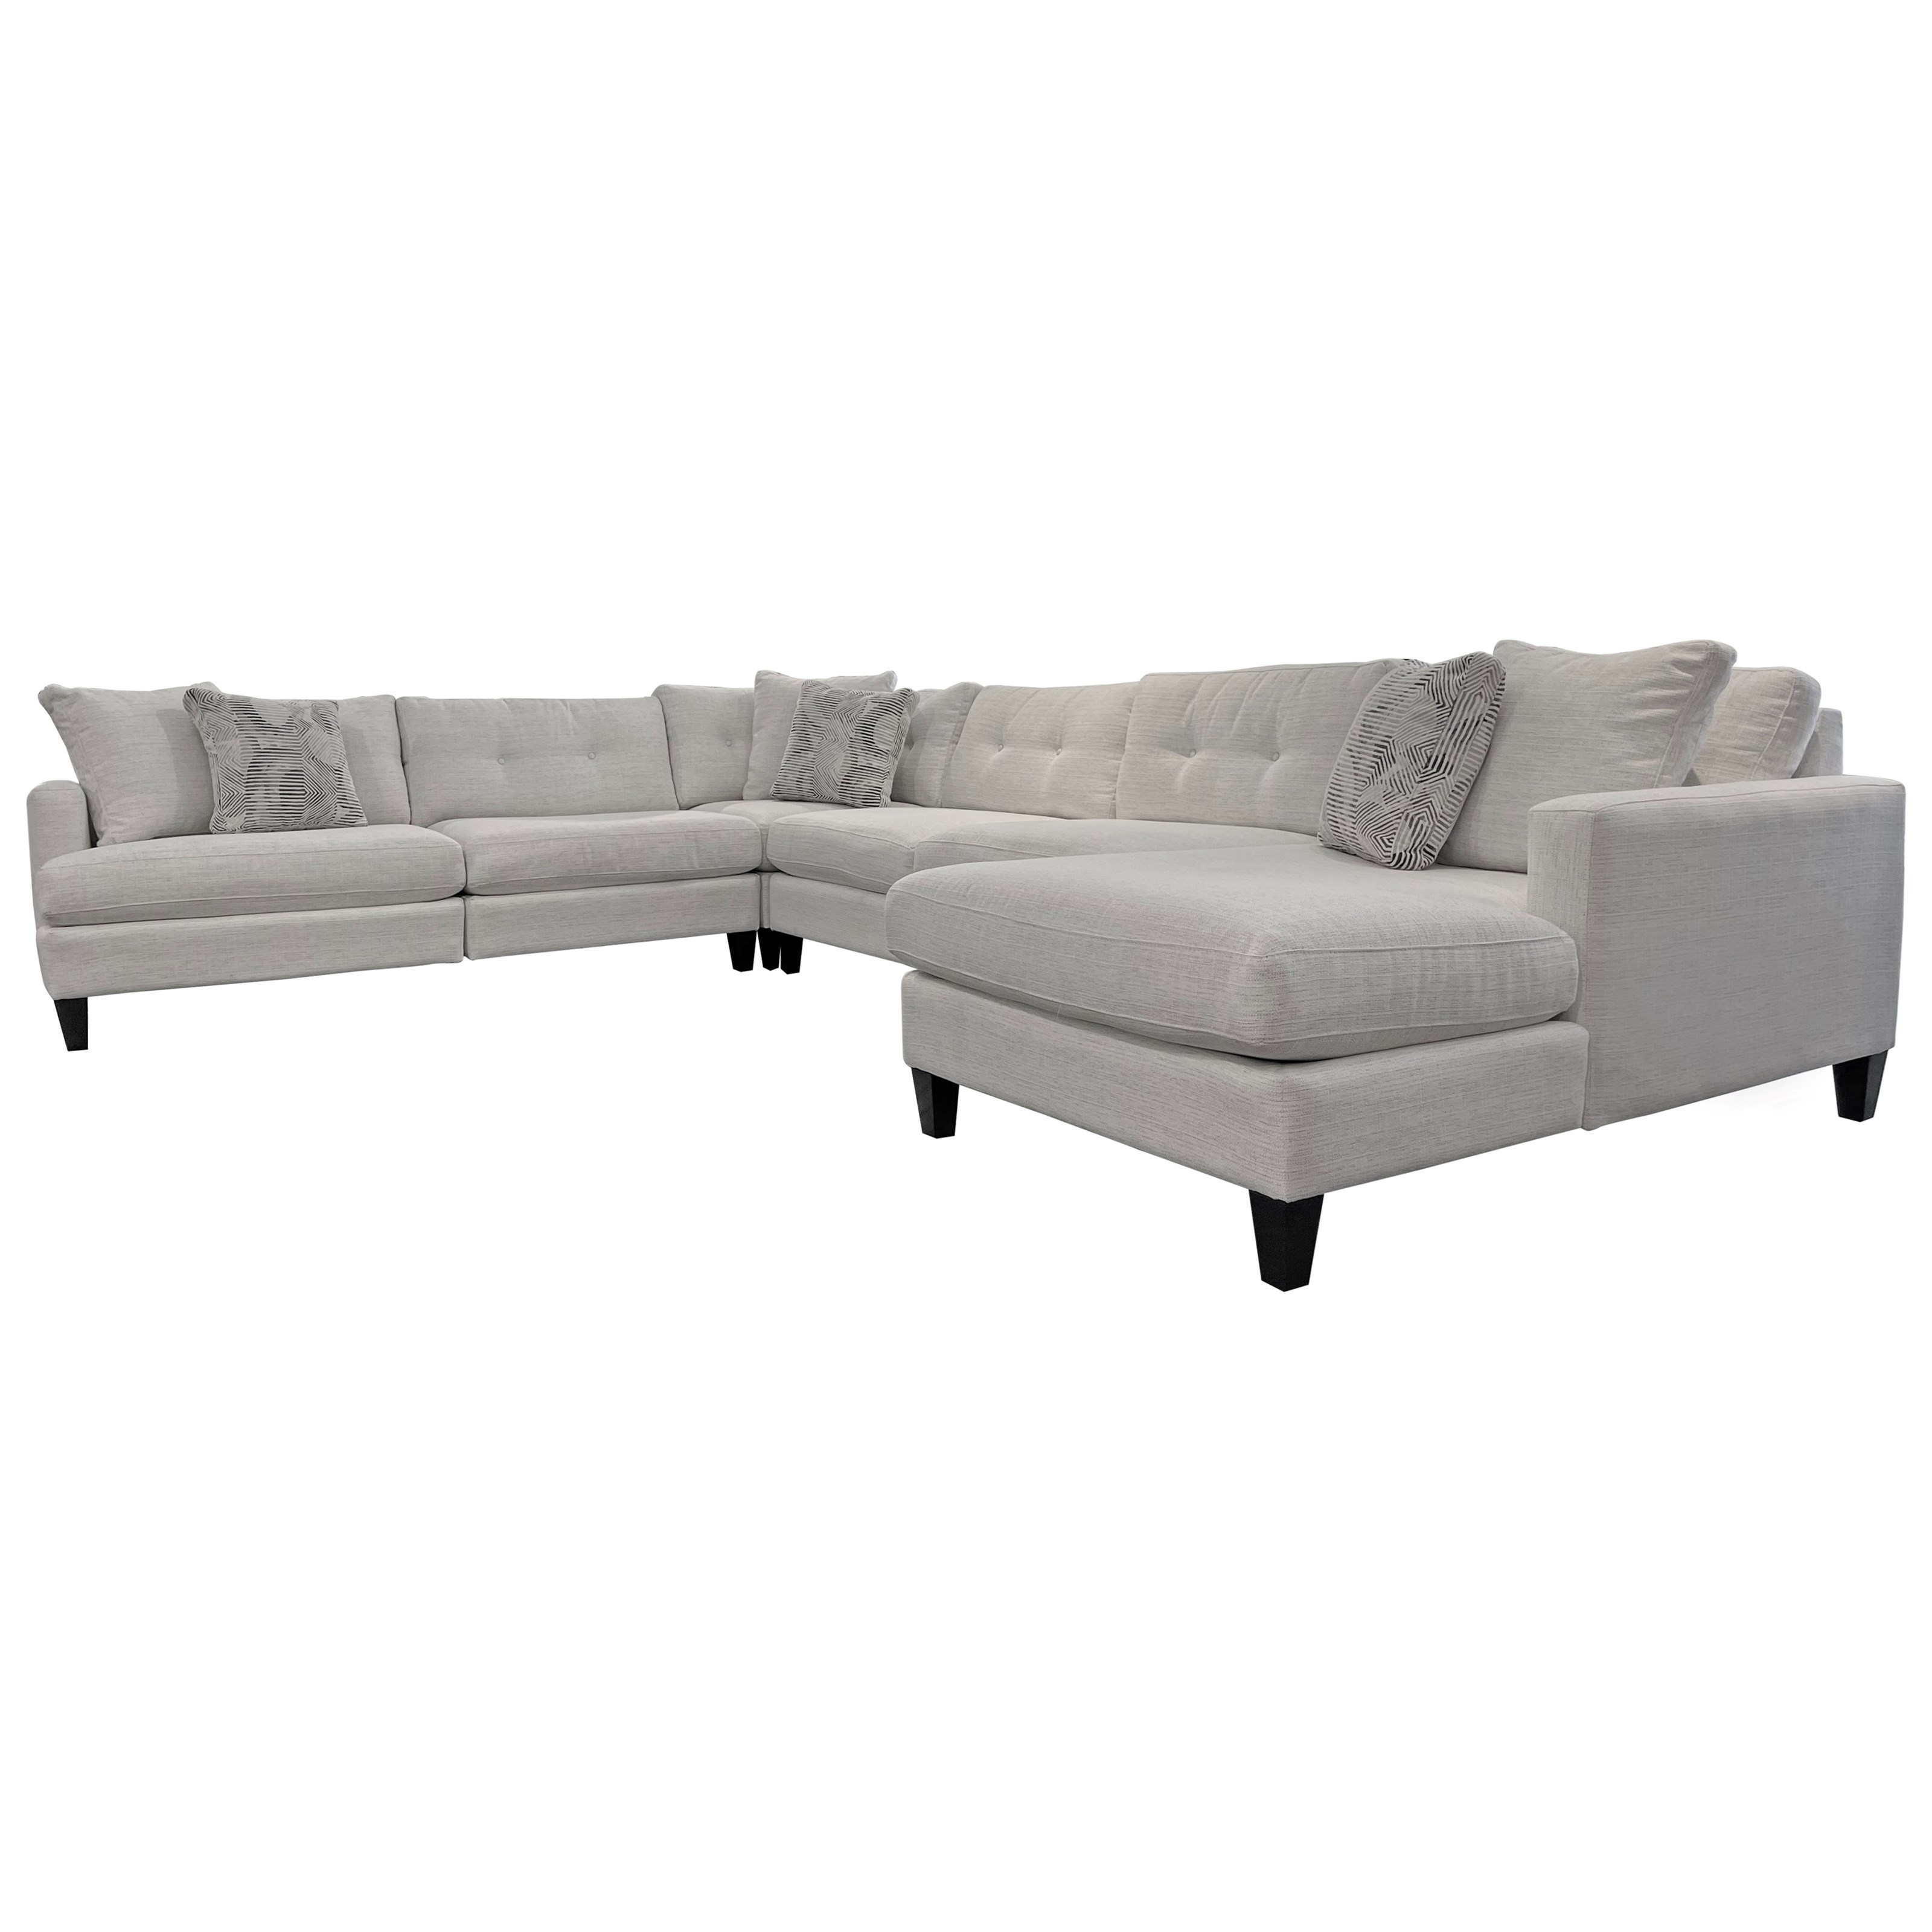 Mia Modular 5 Piece Sectional by Jonathan Louis at C. S. Wo & Sons Hawaii